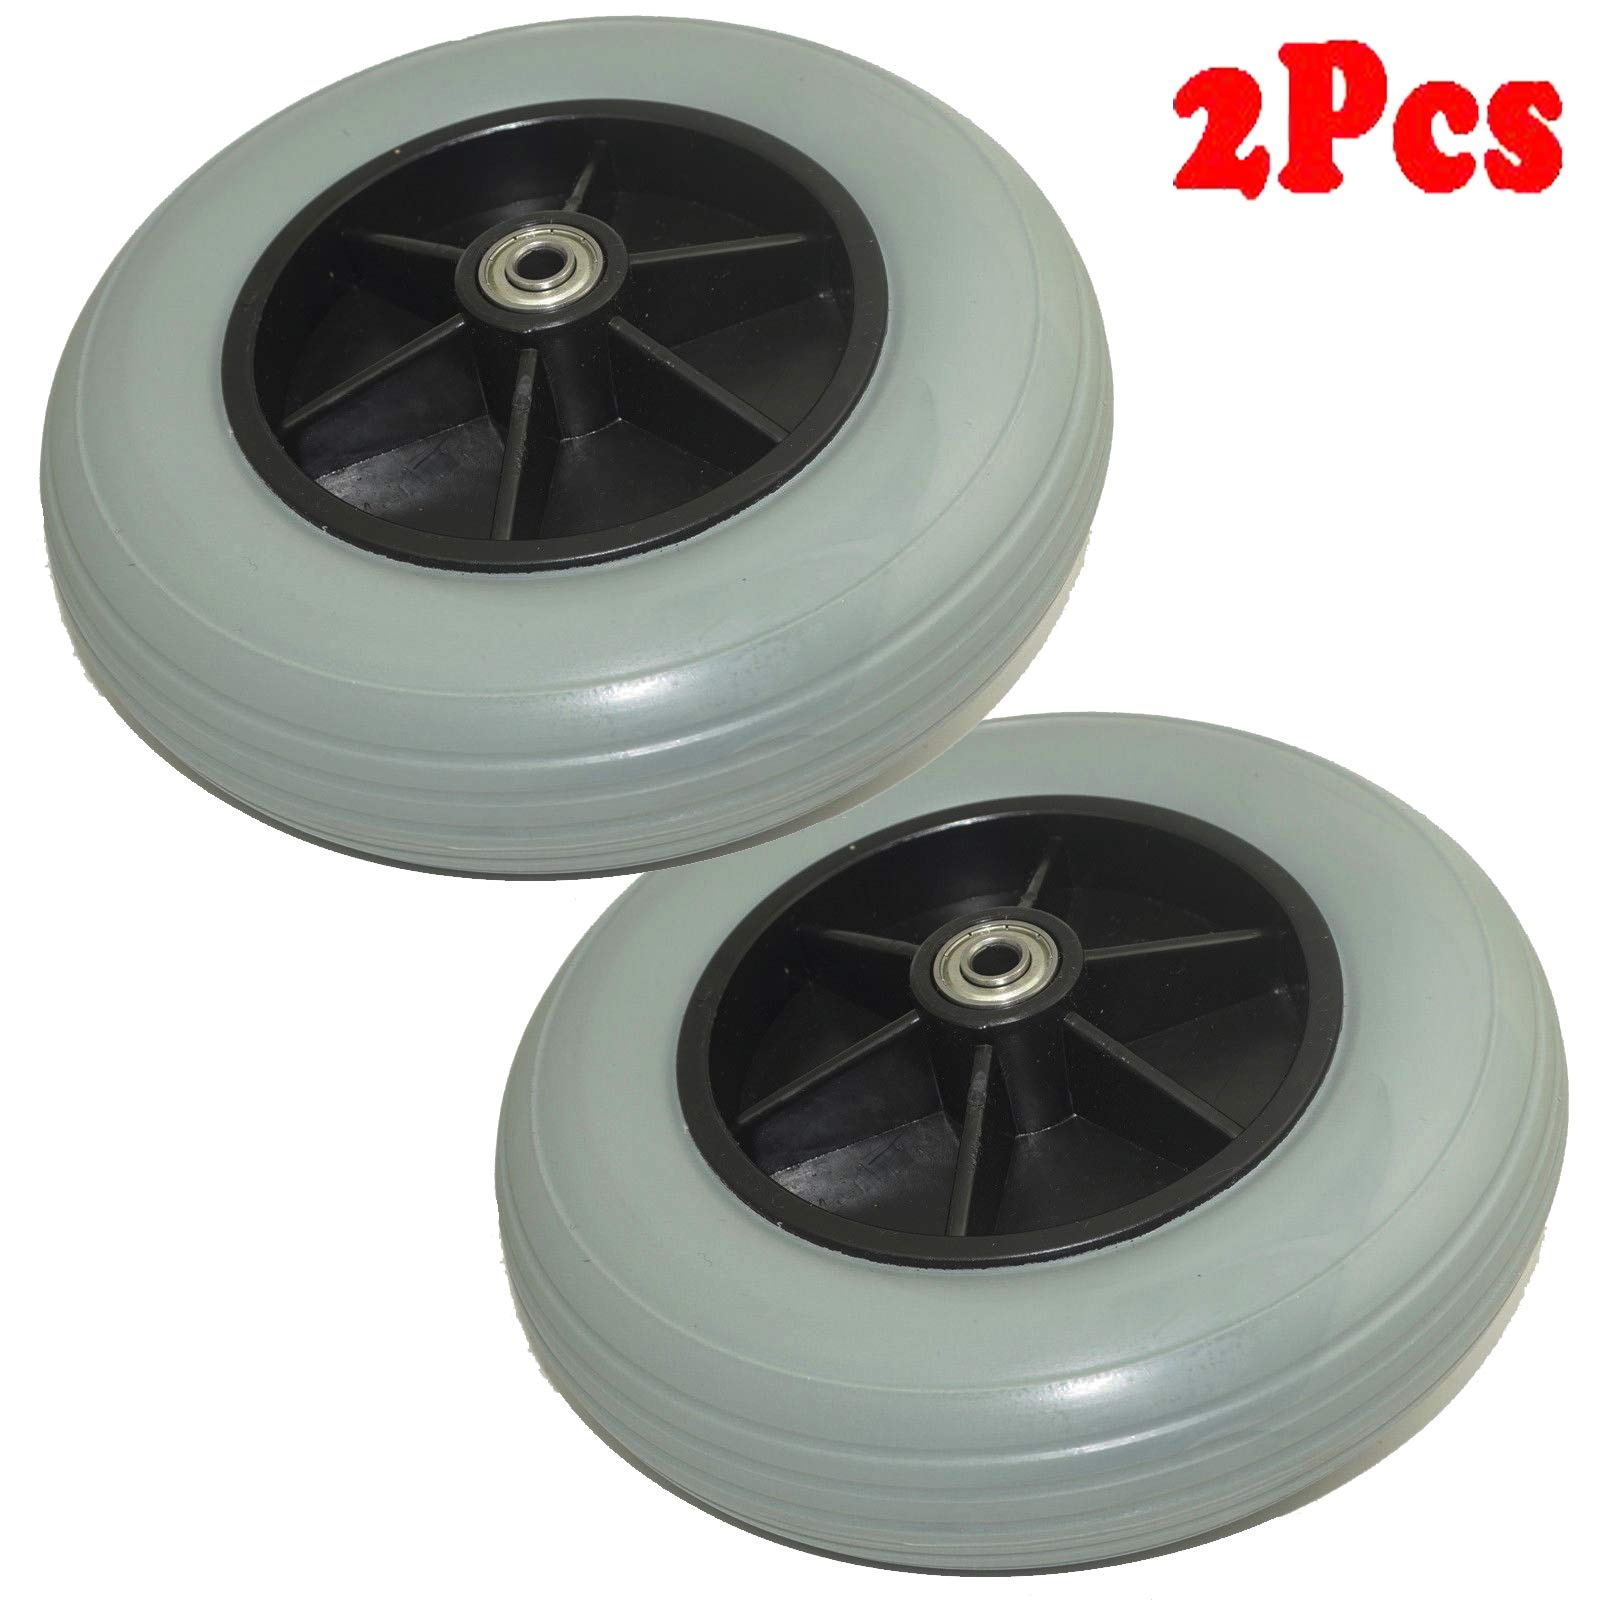 (Pair of Two) ,8'' x 2'' (200x50) Solid Rubber Front Rear Caster Tires Wheels Assembly for Jazzy, Quantum, and Jet Power Wheelchair's/Electric Wheelchair for Many Standard Wheelchairs Replace